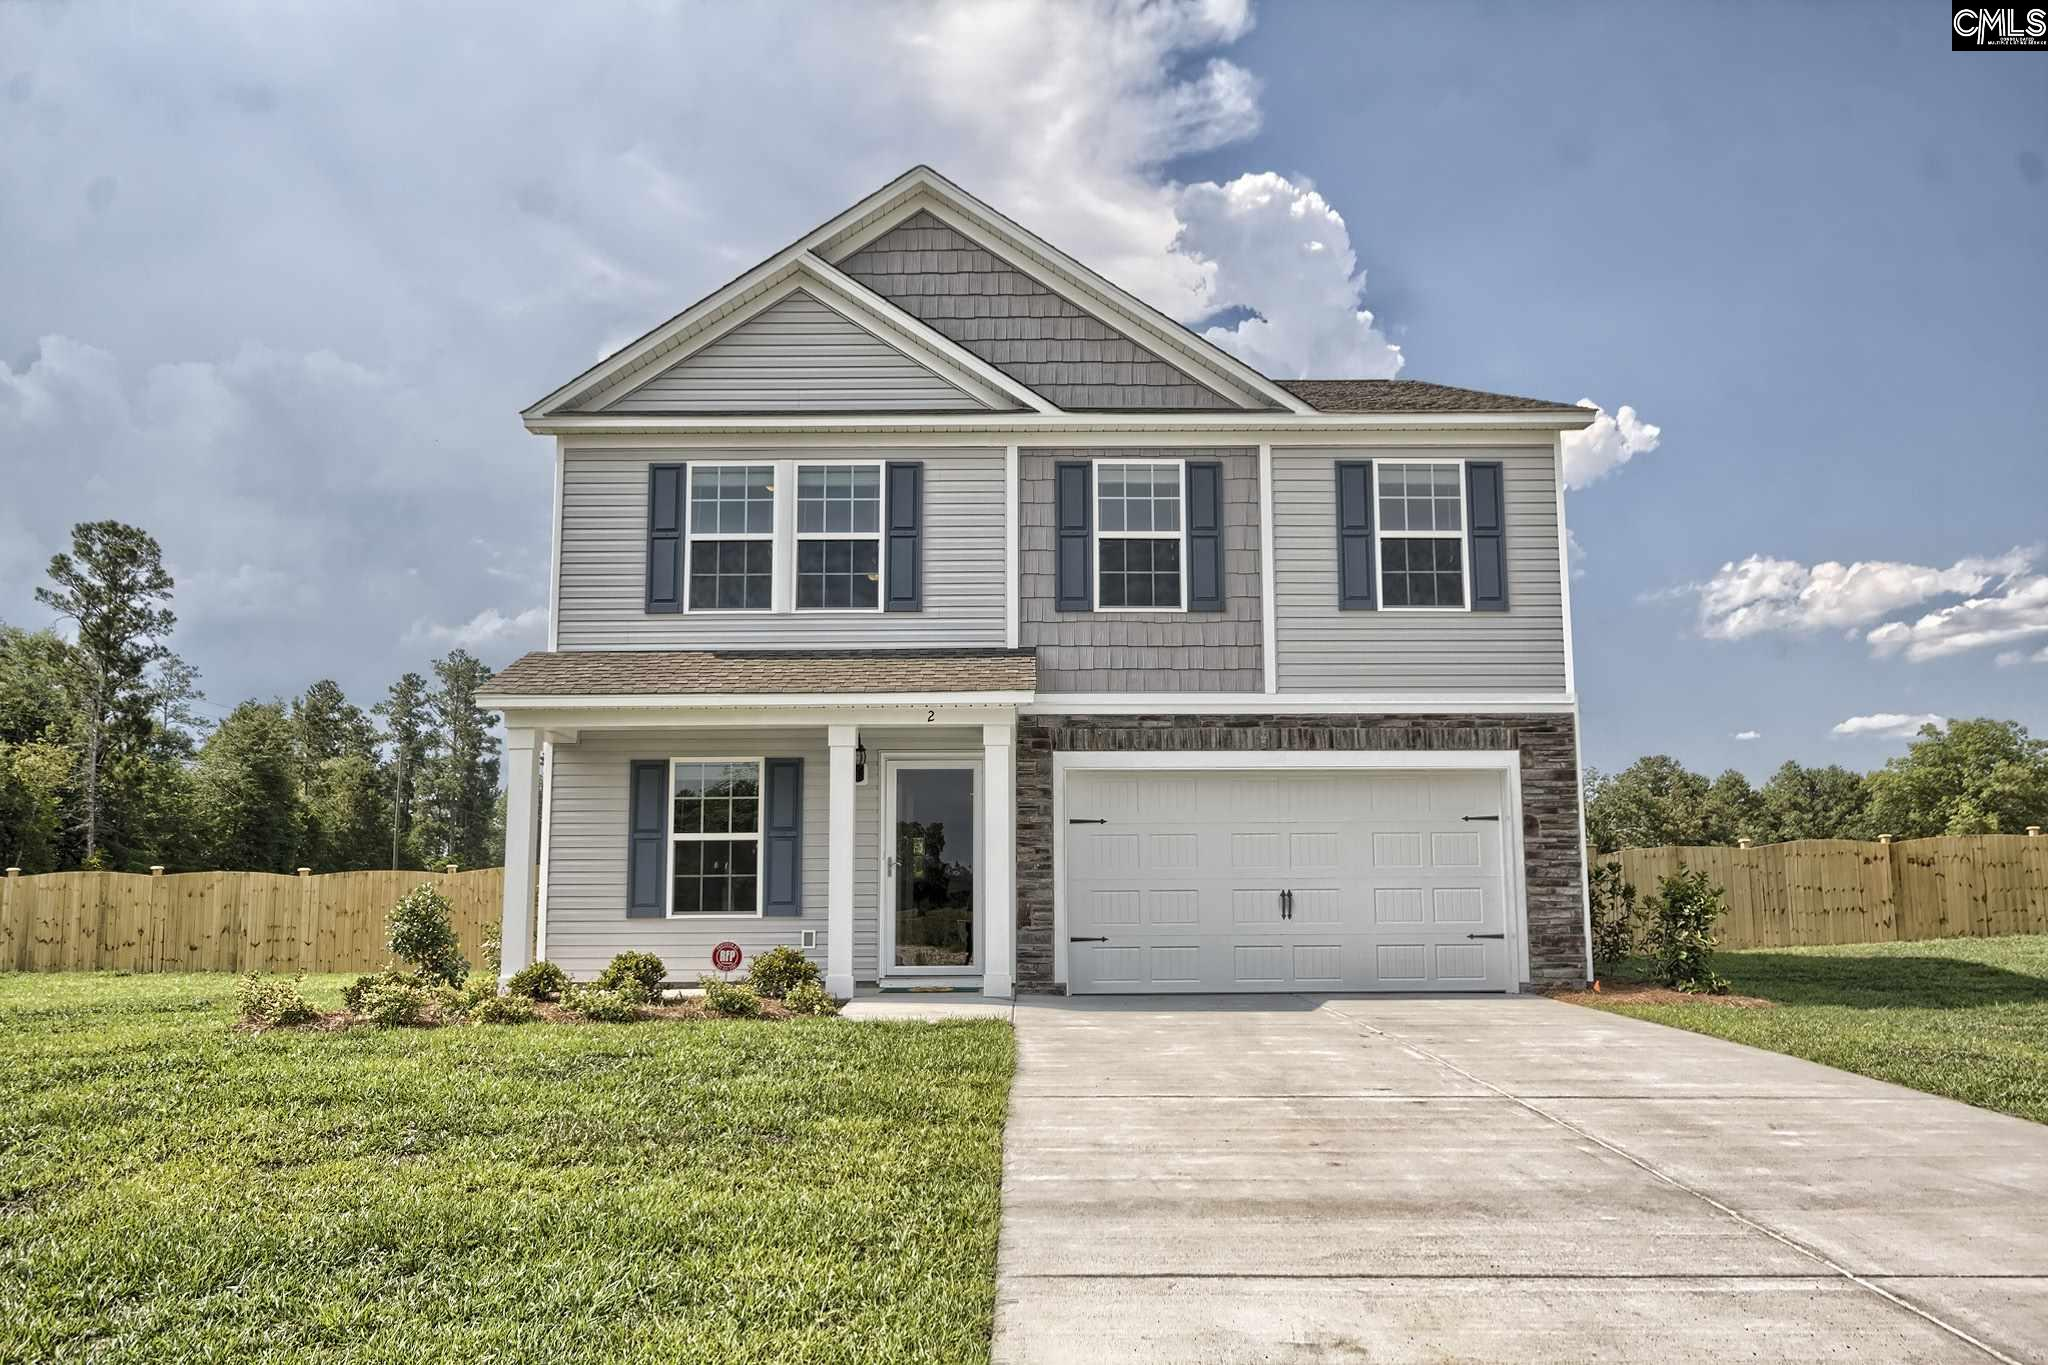 357 Summer Creek (lot 21) West Columbia, SC 29172